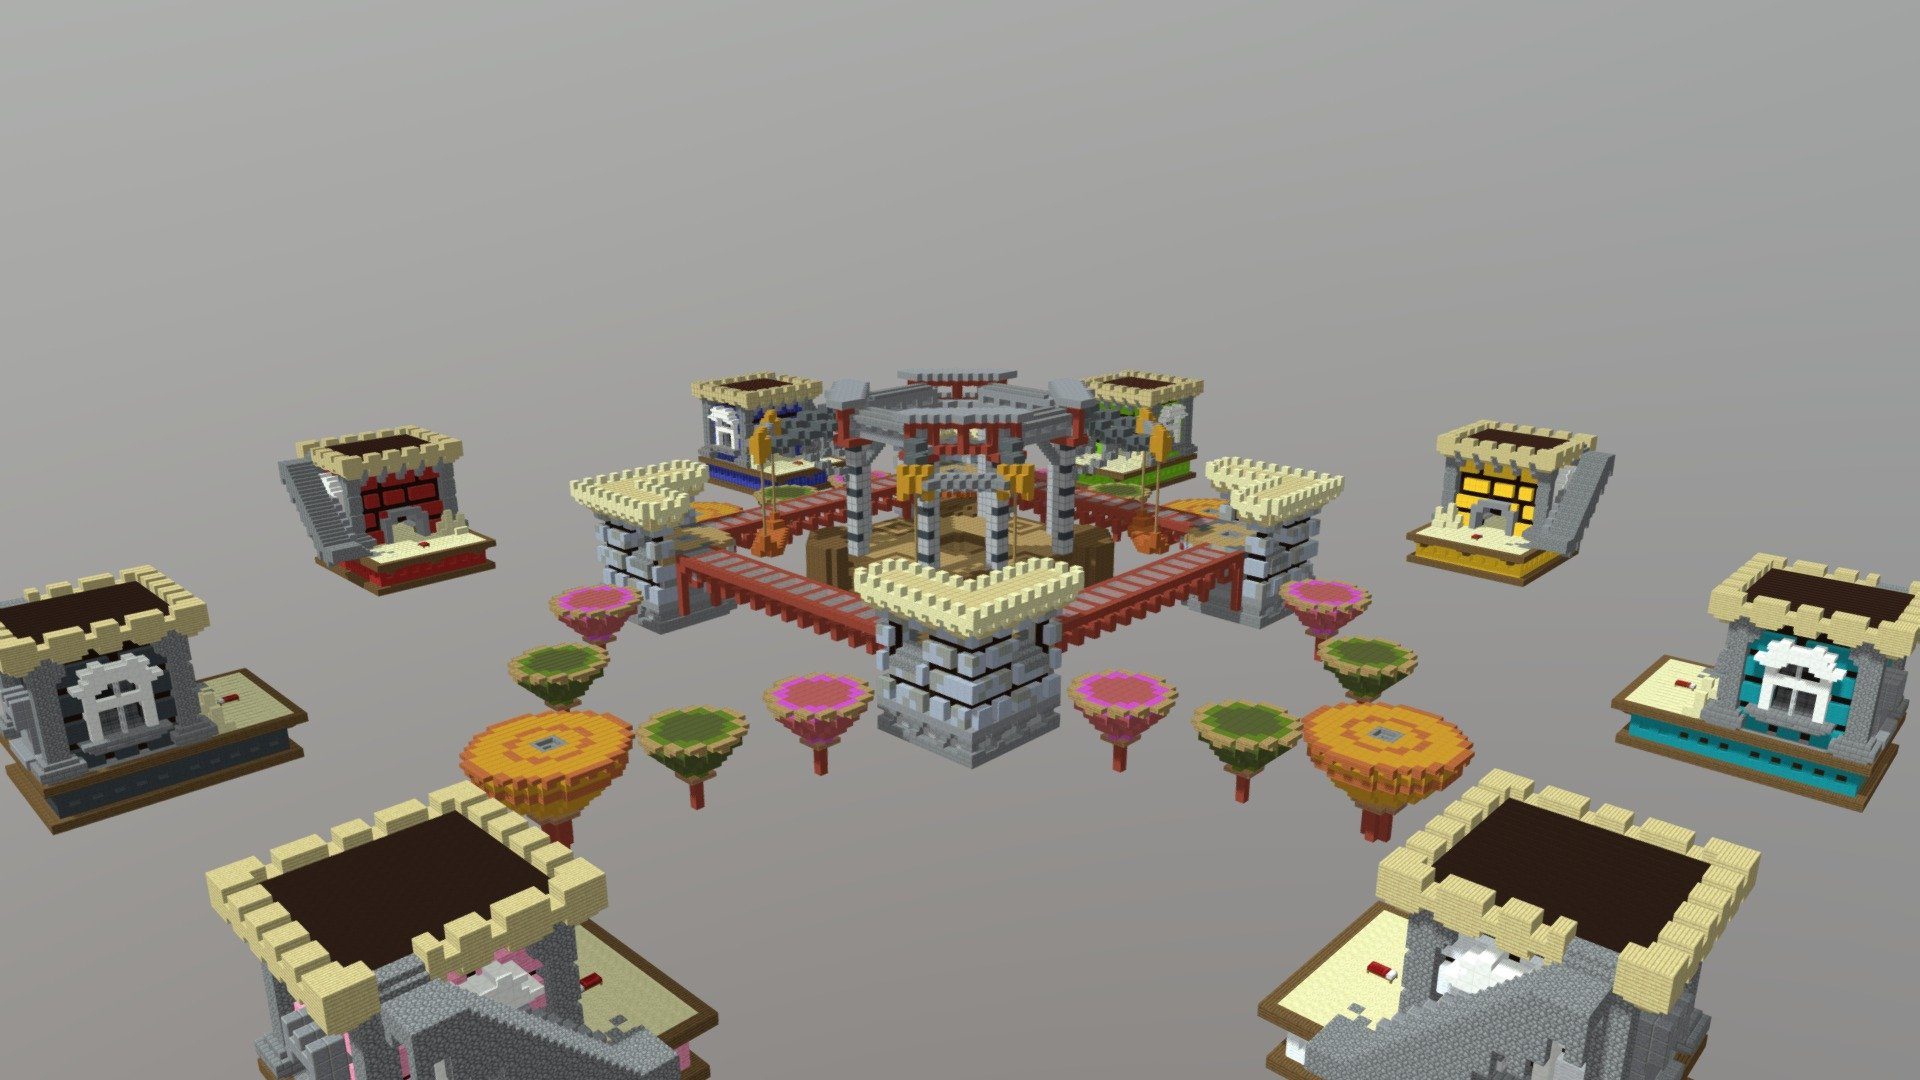 Bedwars Playground 3d Model By Beanng Beanng 69f7b4f Sketchfab